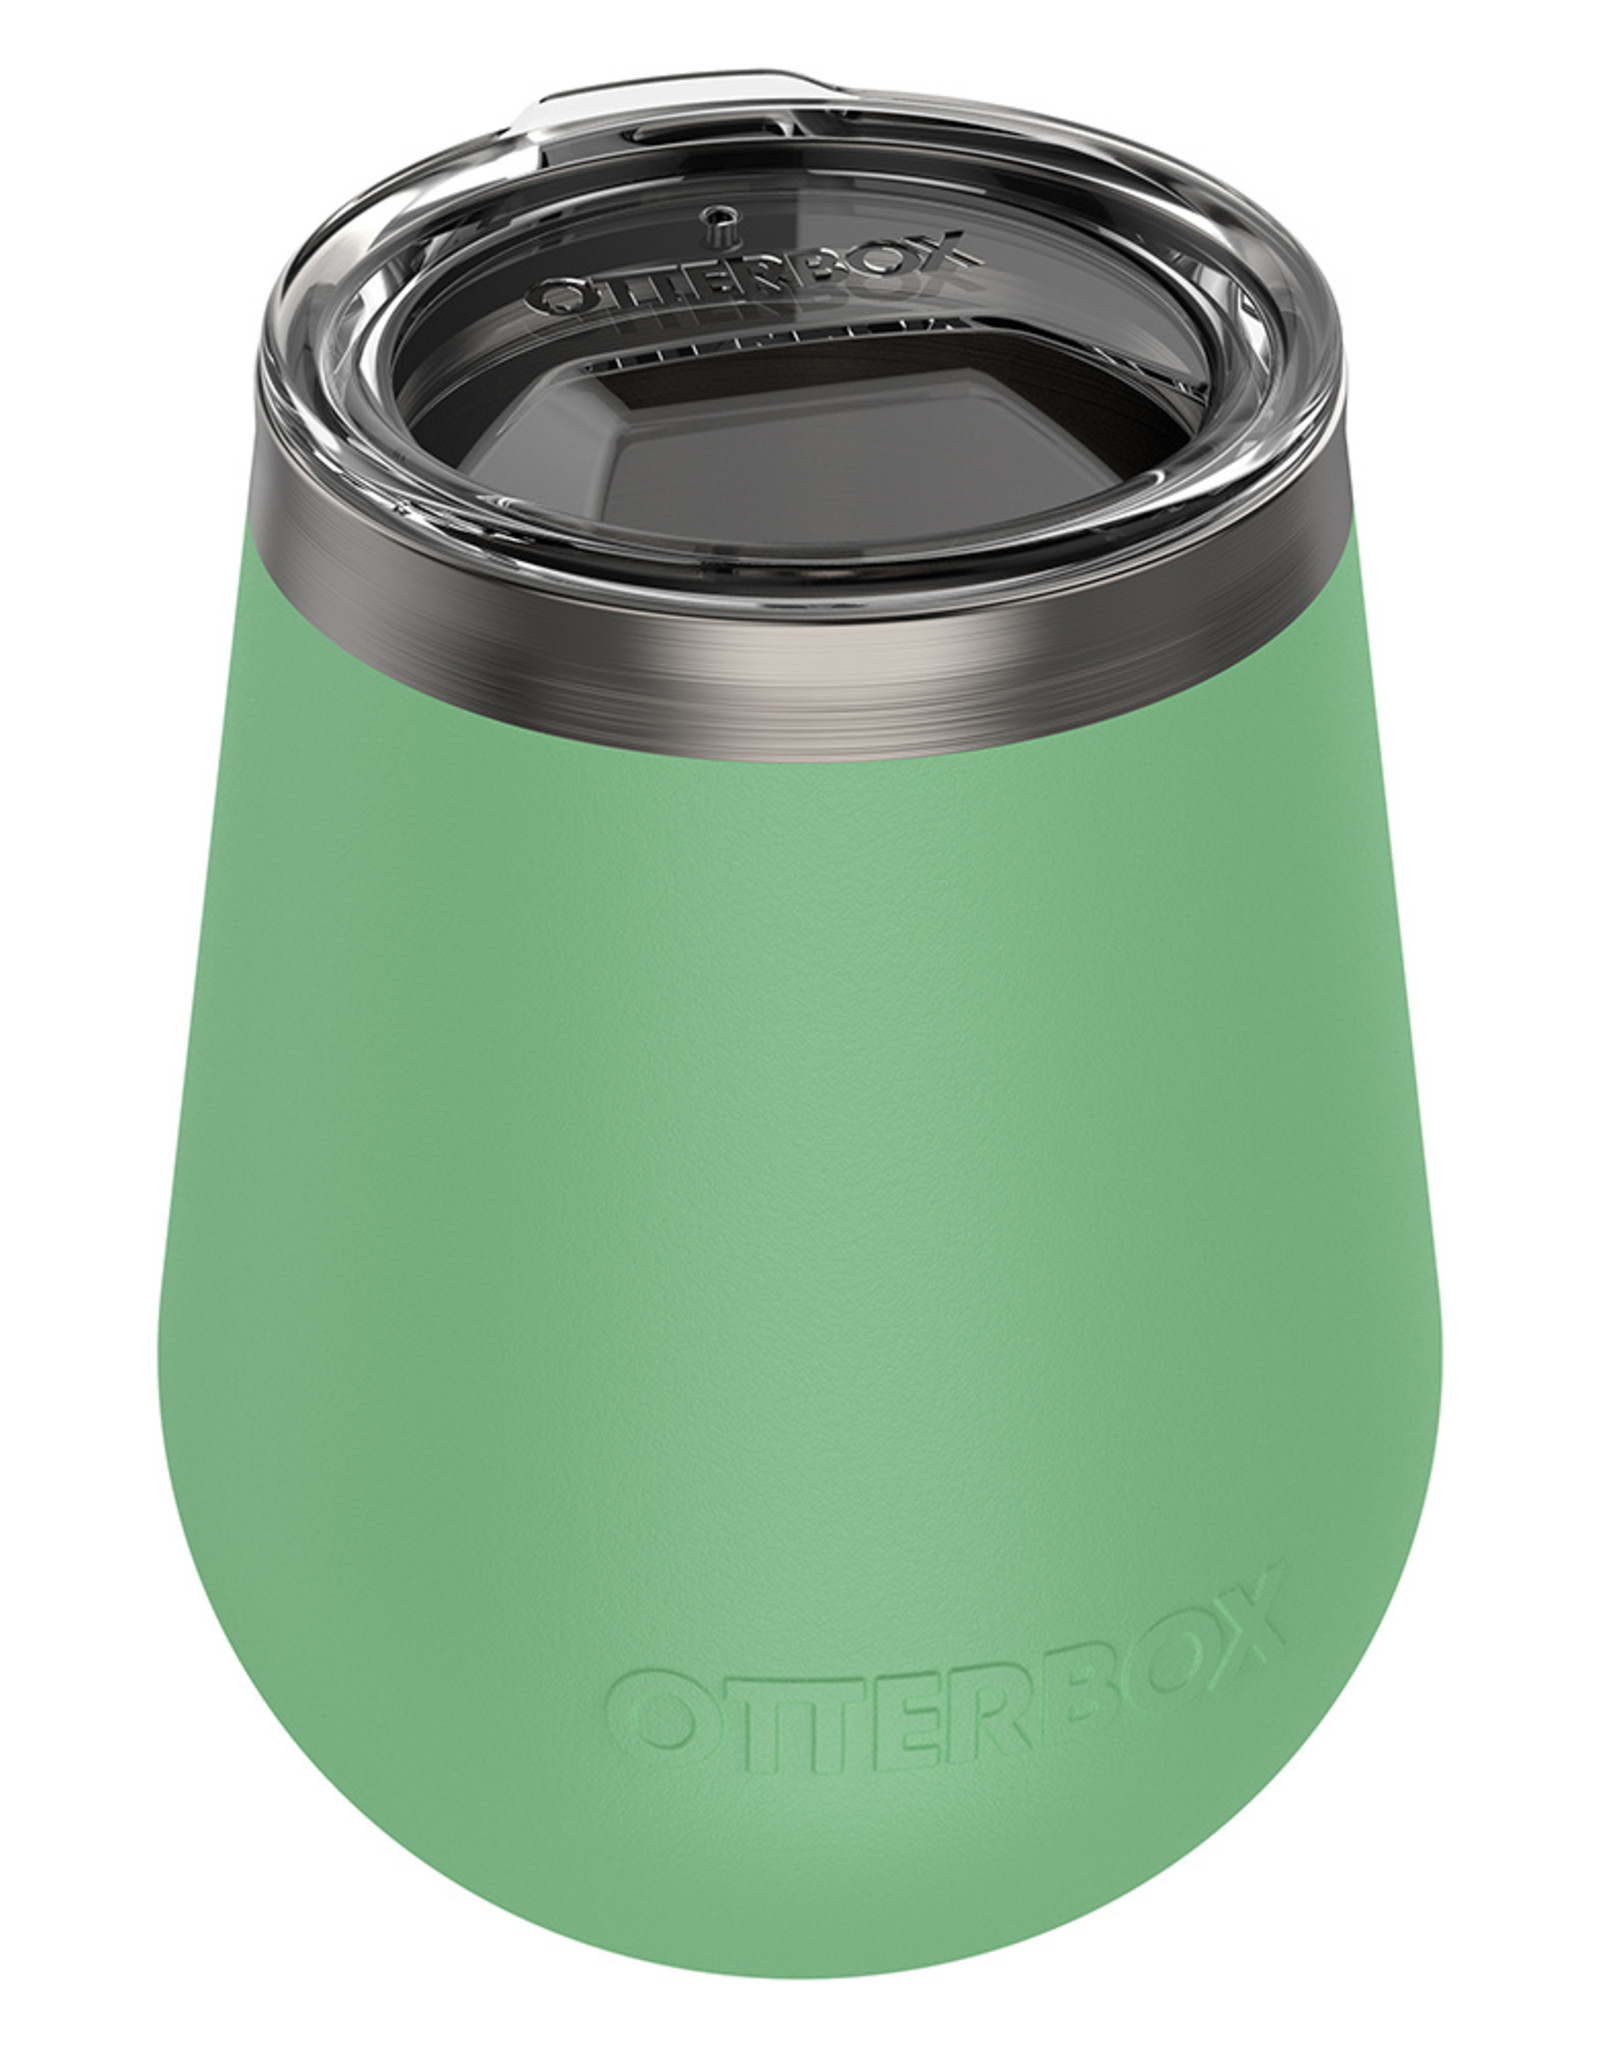 Otterbox Otterbox - Elevation Wine Tumbler Mint Spring (Stainless Steel/Green Ash) 102-0110